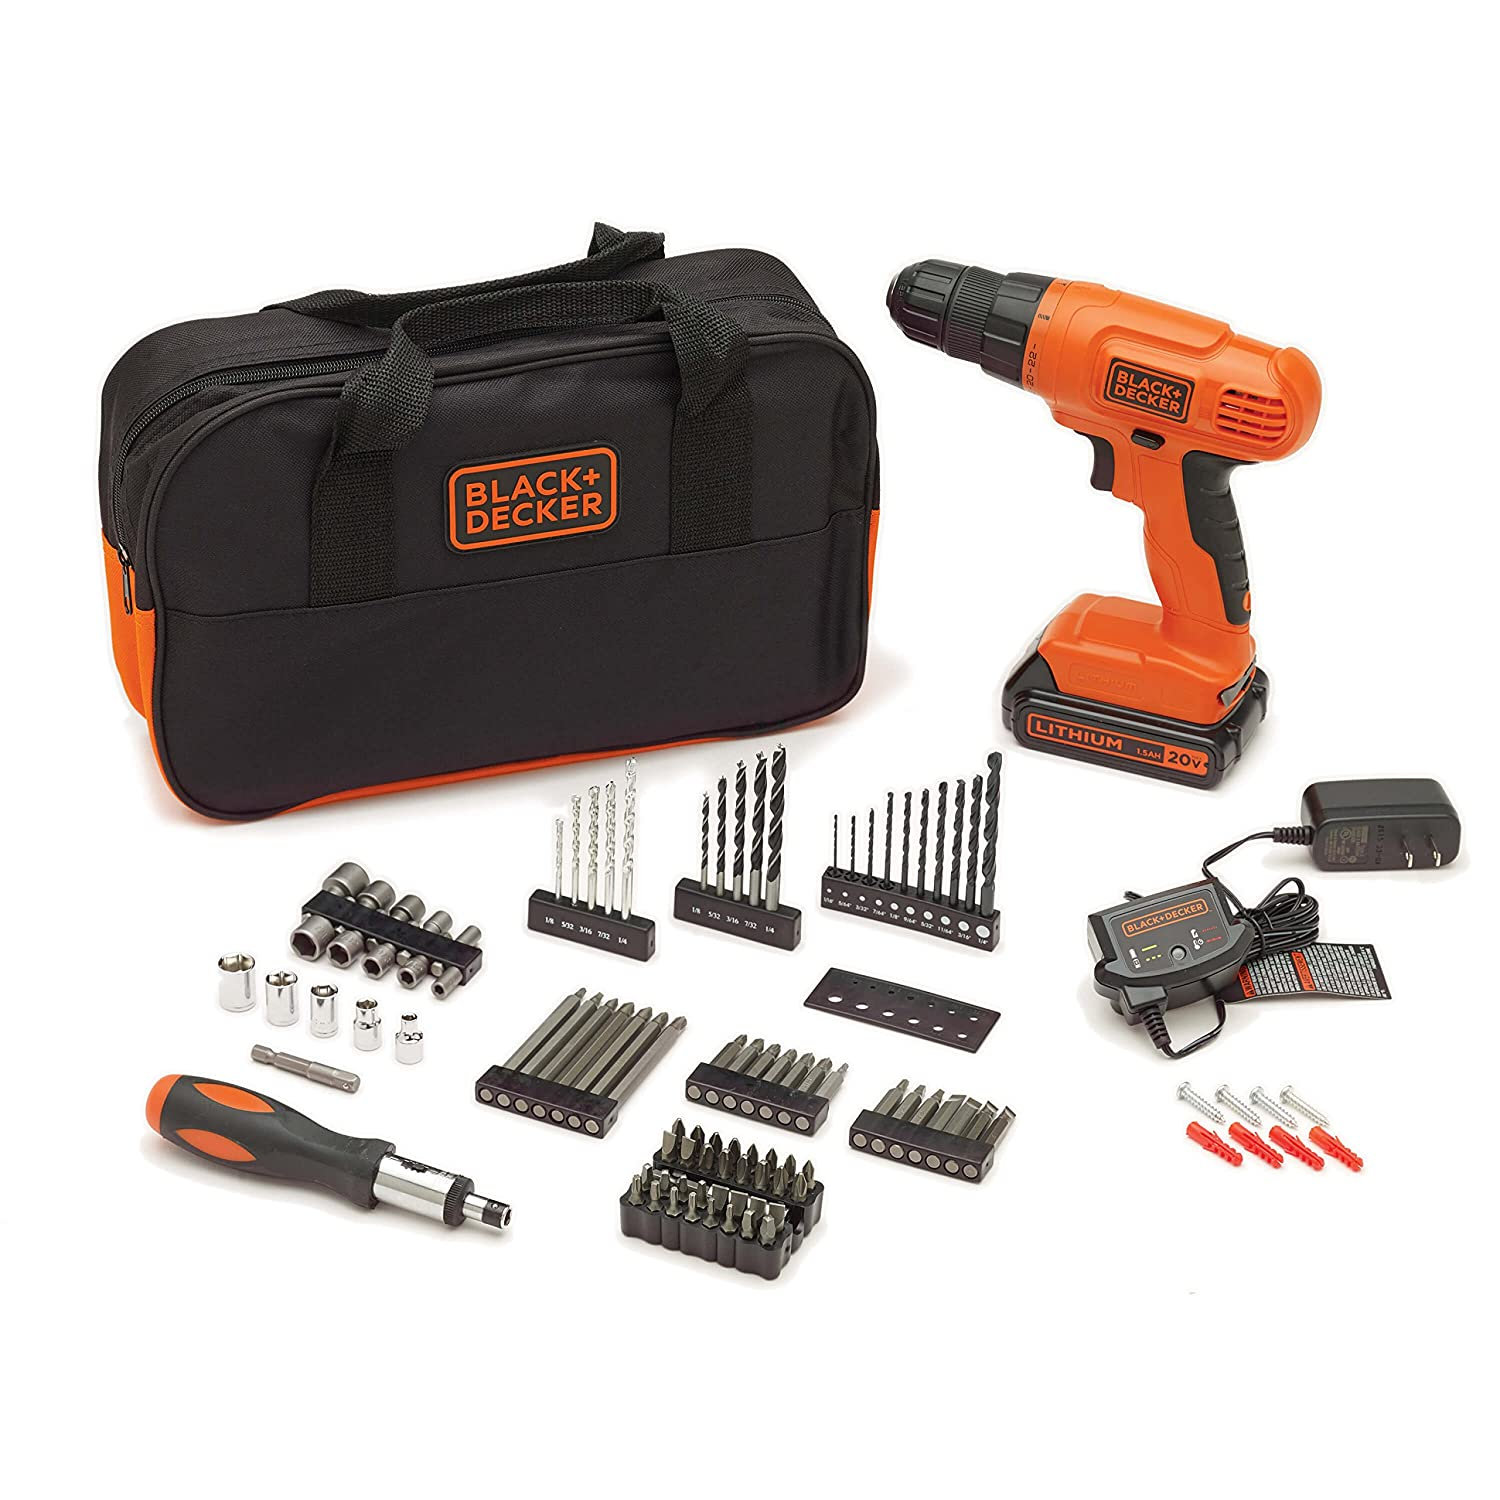 holiday gift idea 55 off black decker 20 volt max lithium ion drill kit today only. Black Bedroom Furniture Sets. Home Design Ideas